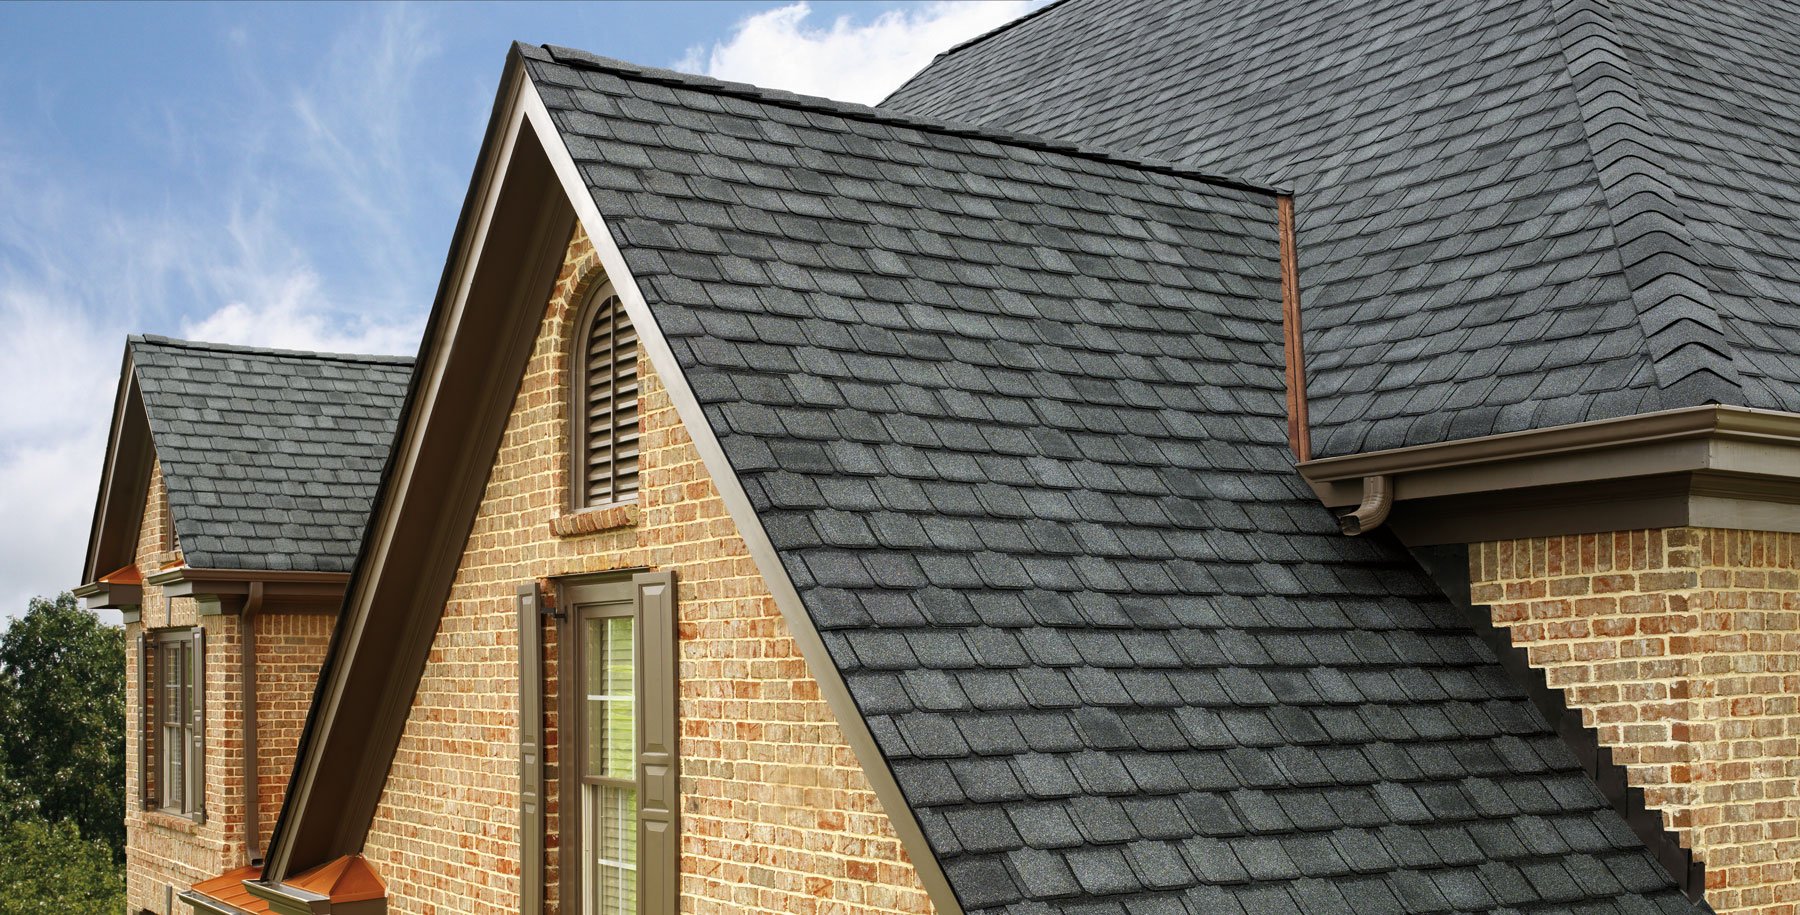 3 Ways Builders can earn Higher, More Profitable Sales with Specialty Shingles